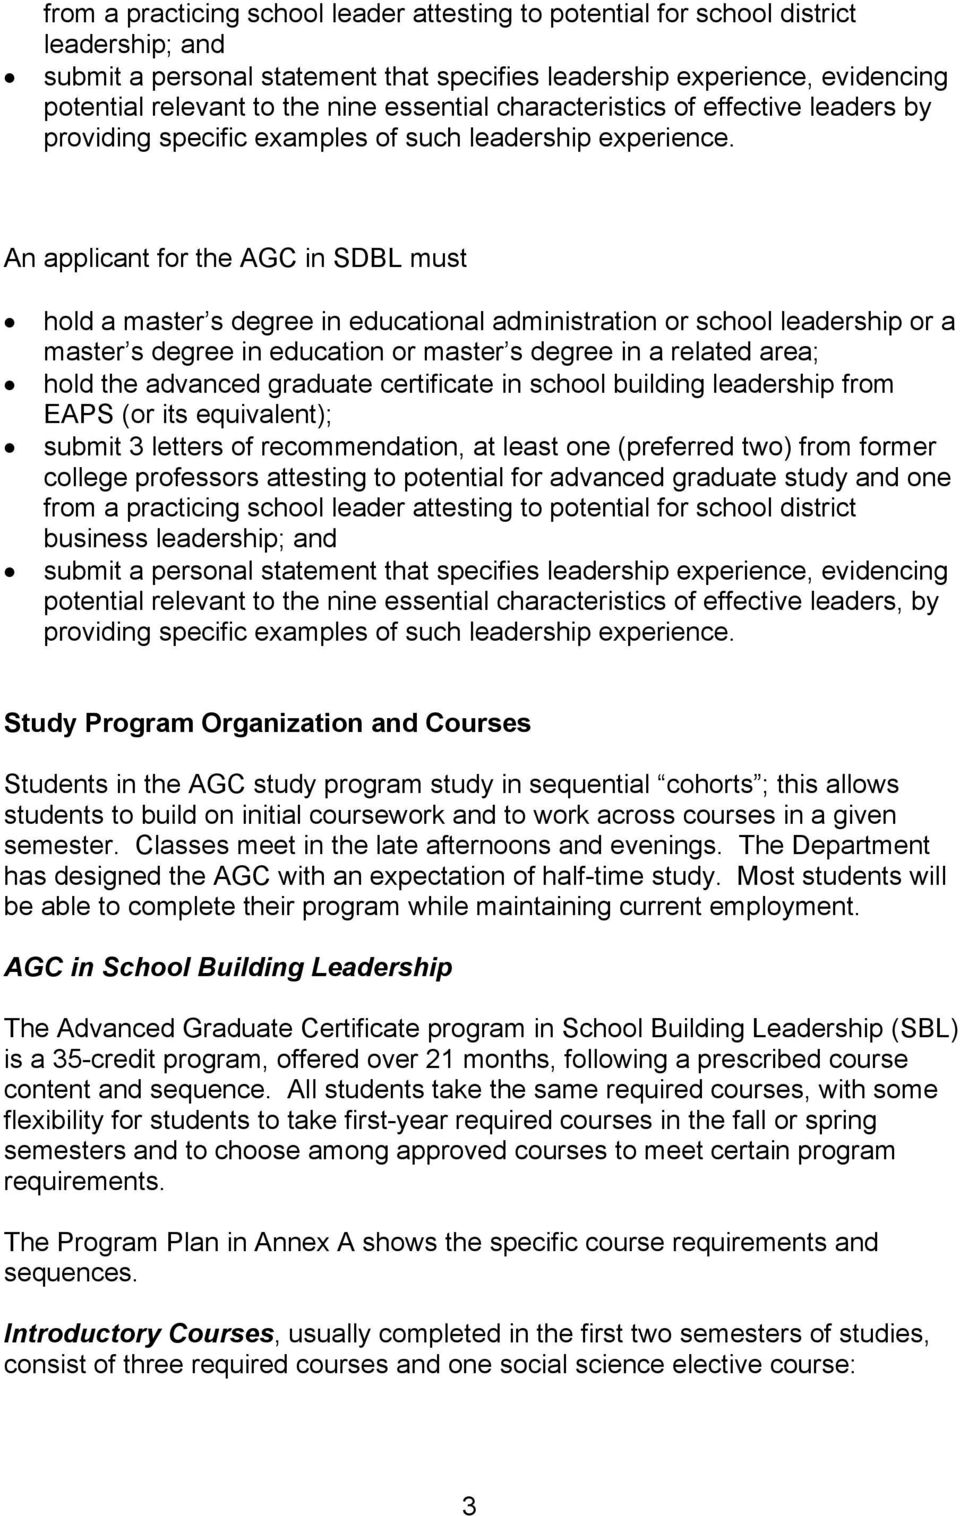 An applicant for the AGC in SDBL must hold a master s degree in educational administration or school leadership or a master s degree in education or master s degree in a related area; hold the